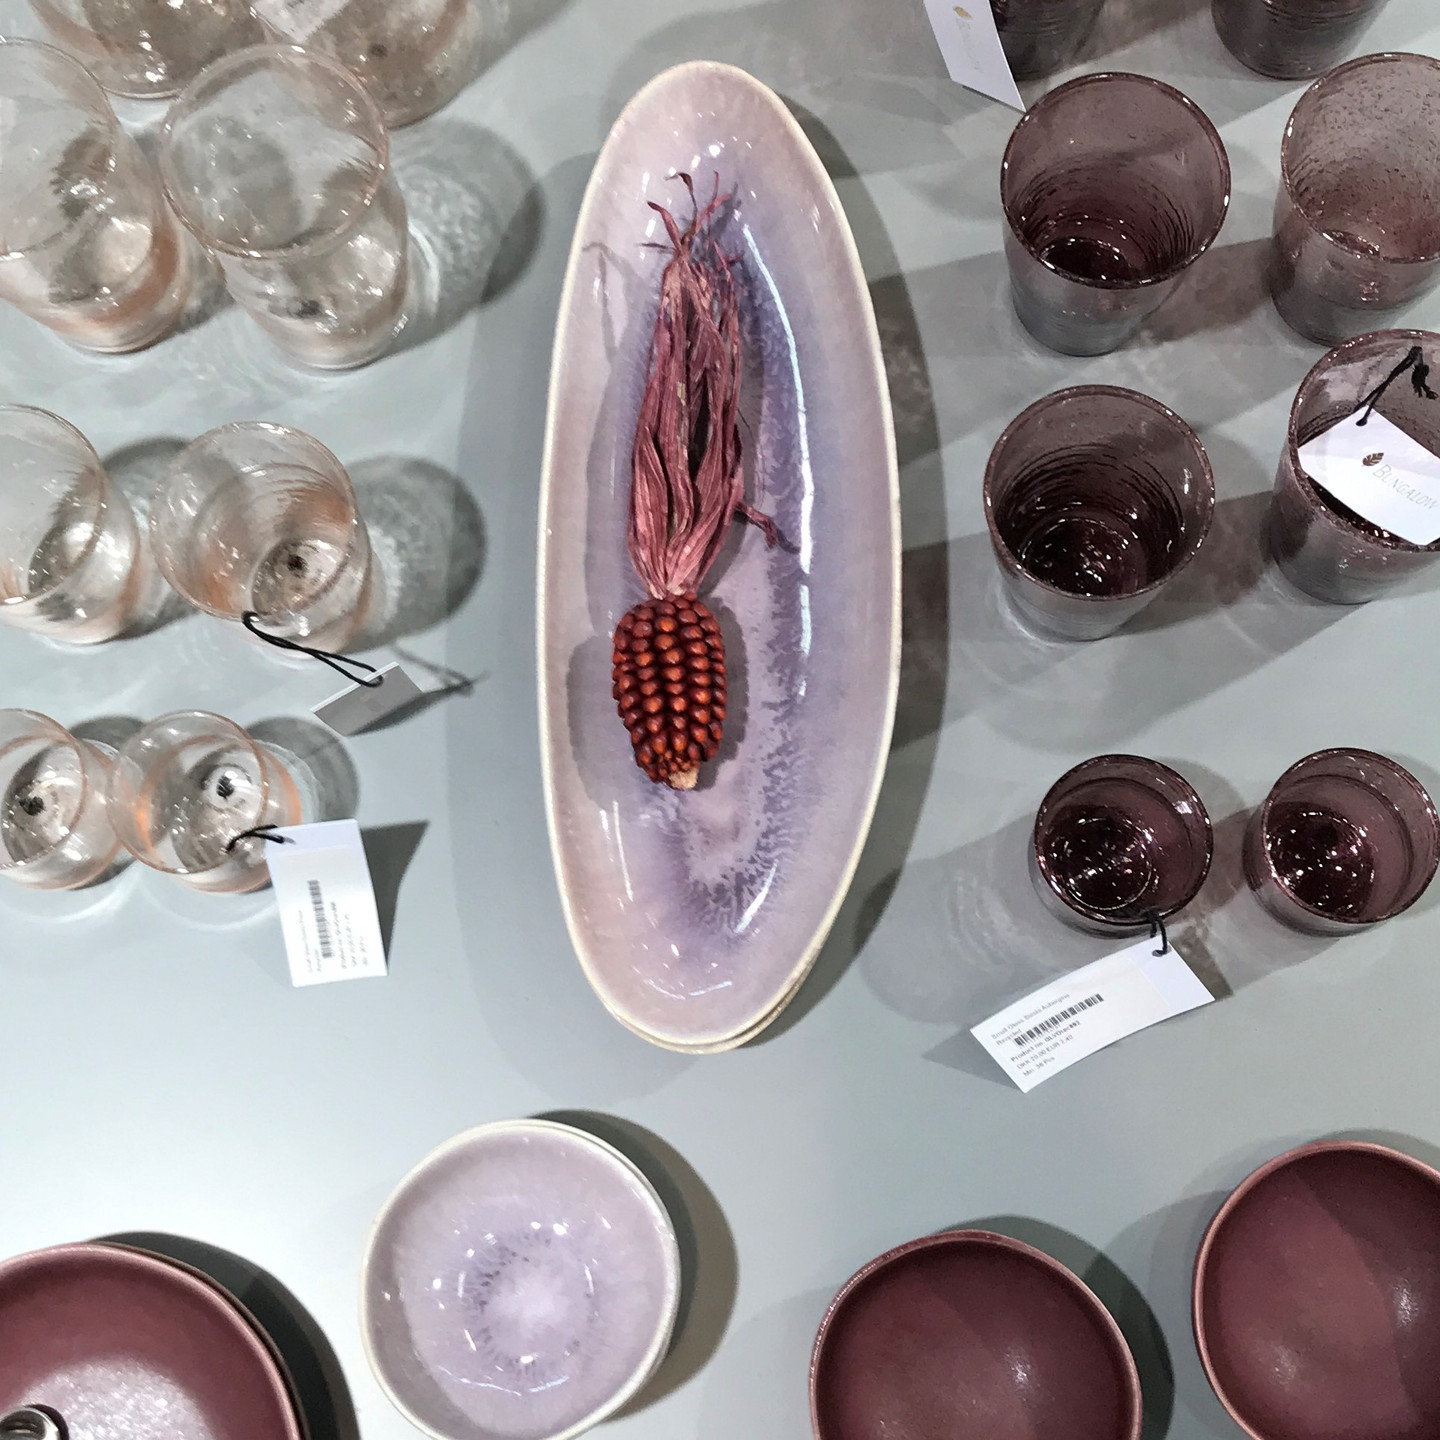 Mauve and Burgundy Dishes Plates Bowls Servingware and Glasses